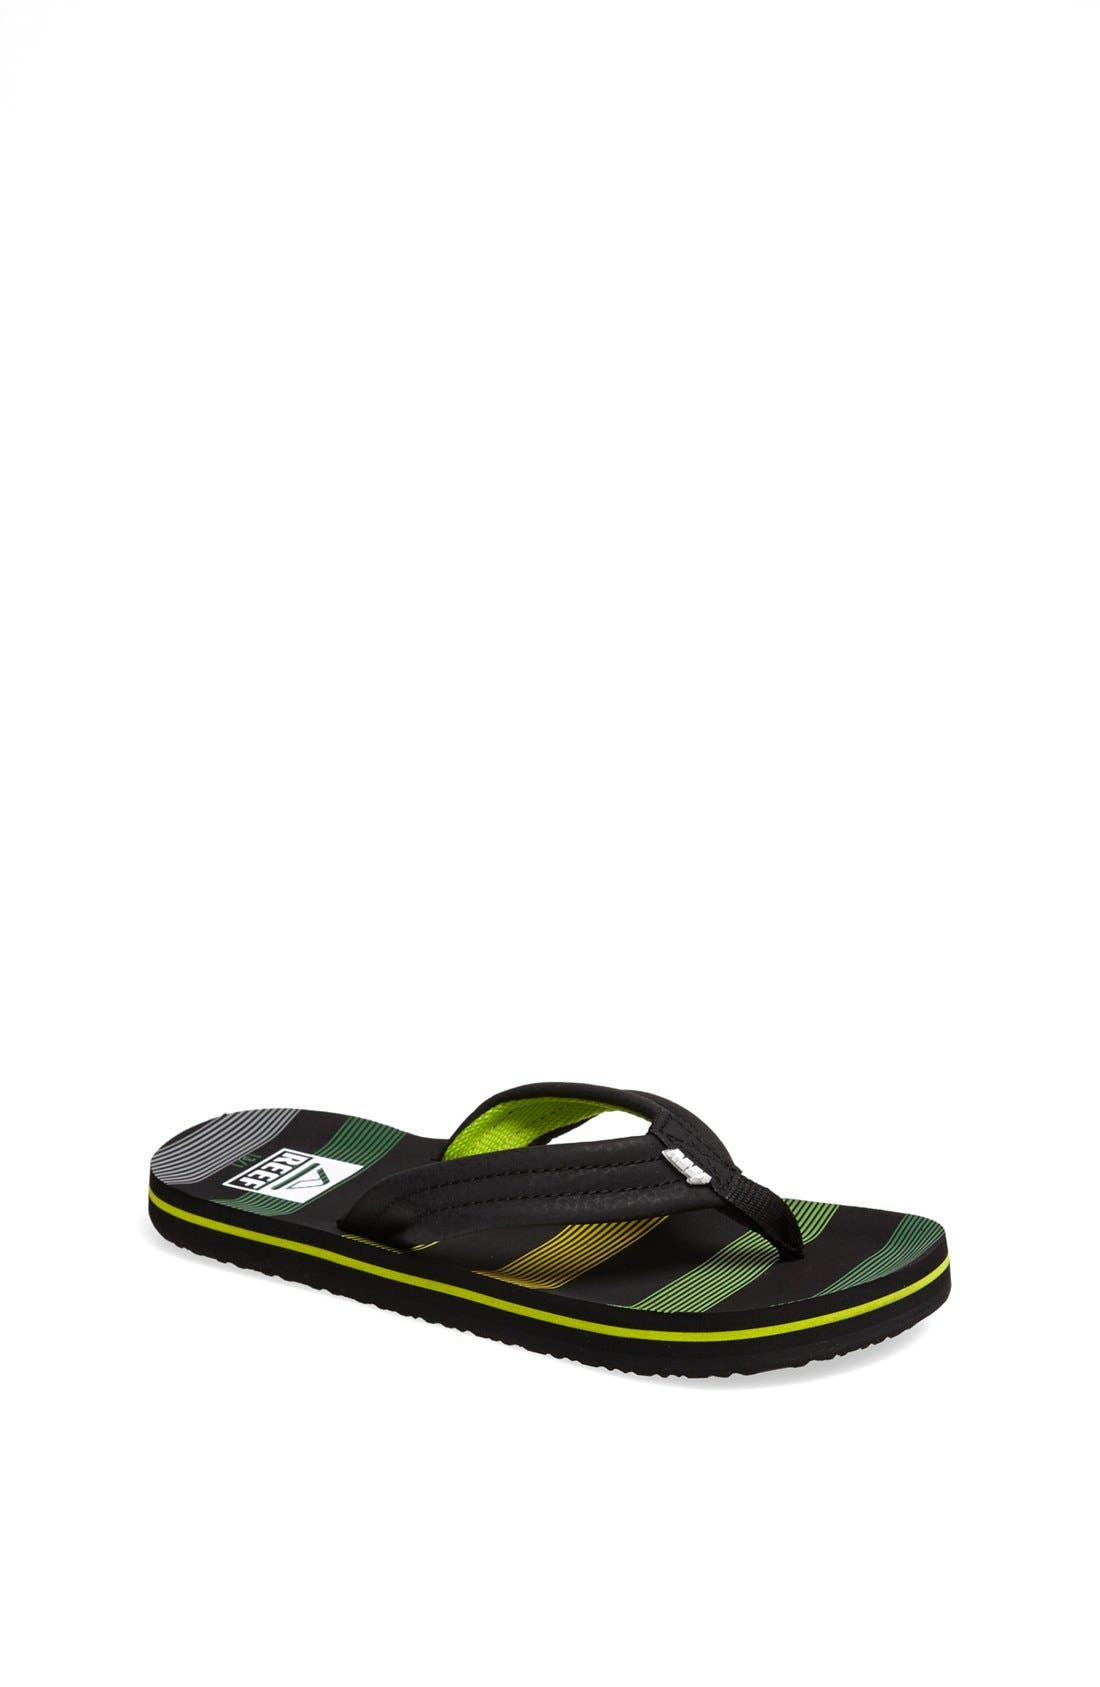 Alternate Image 1 Selected - Reef 'Ahi' Sandal (Baby, Walker, Toddler, Little Kid & Big Kid)